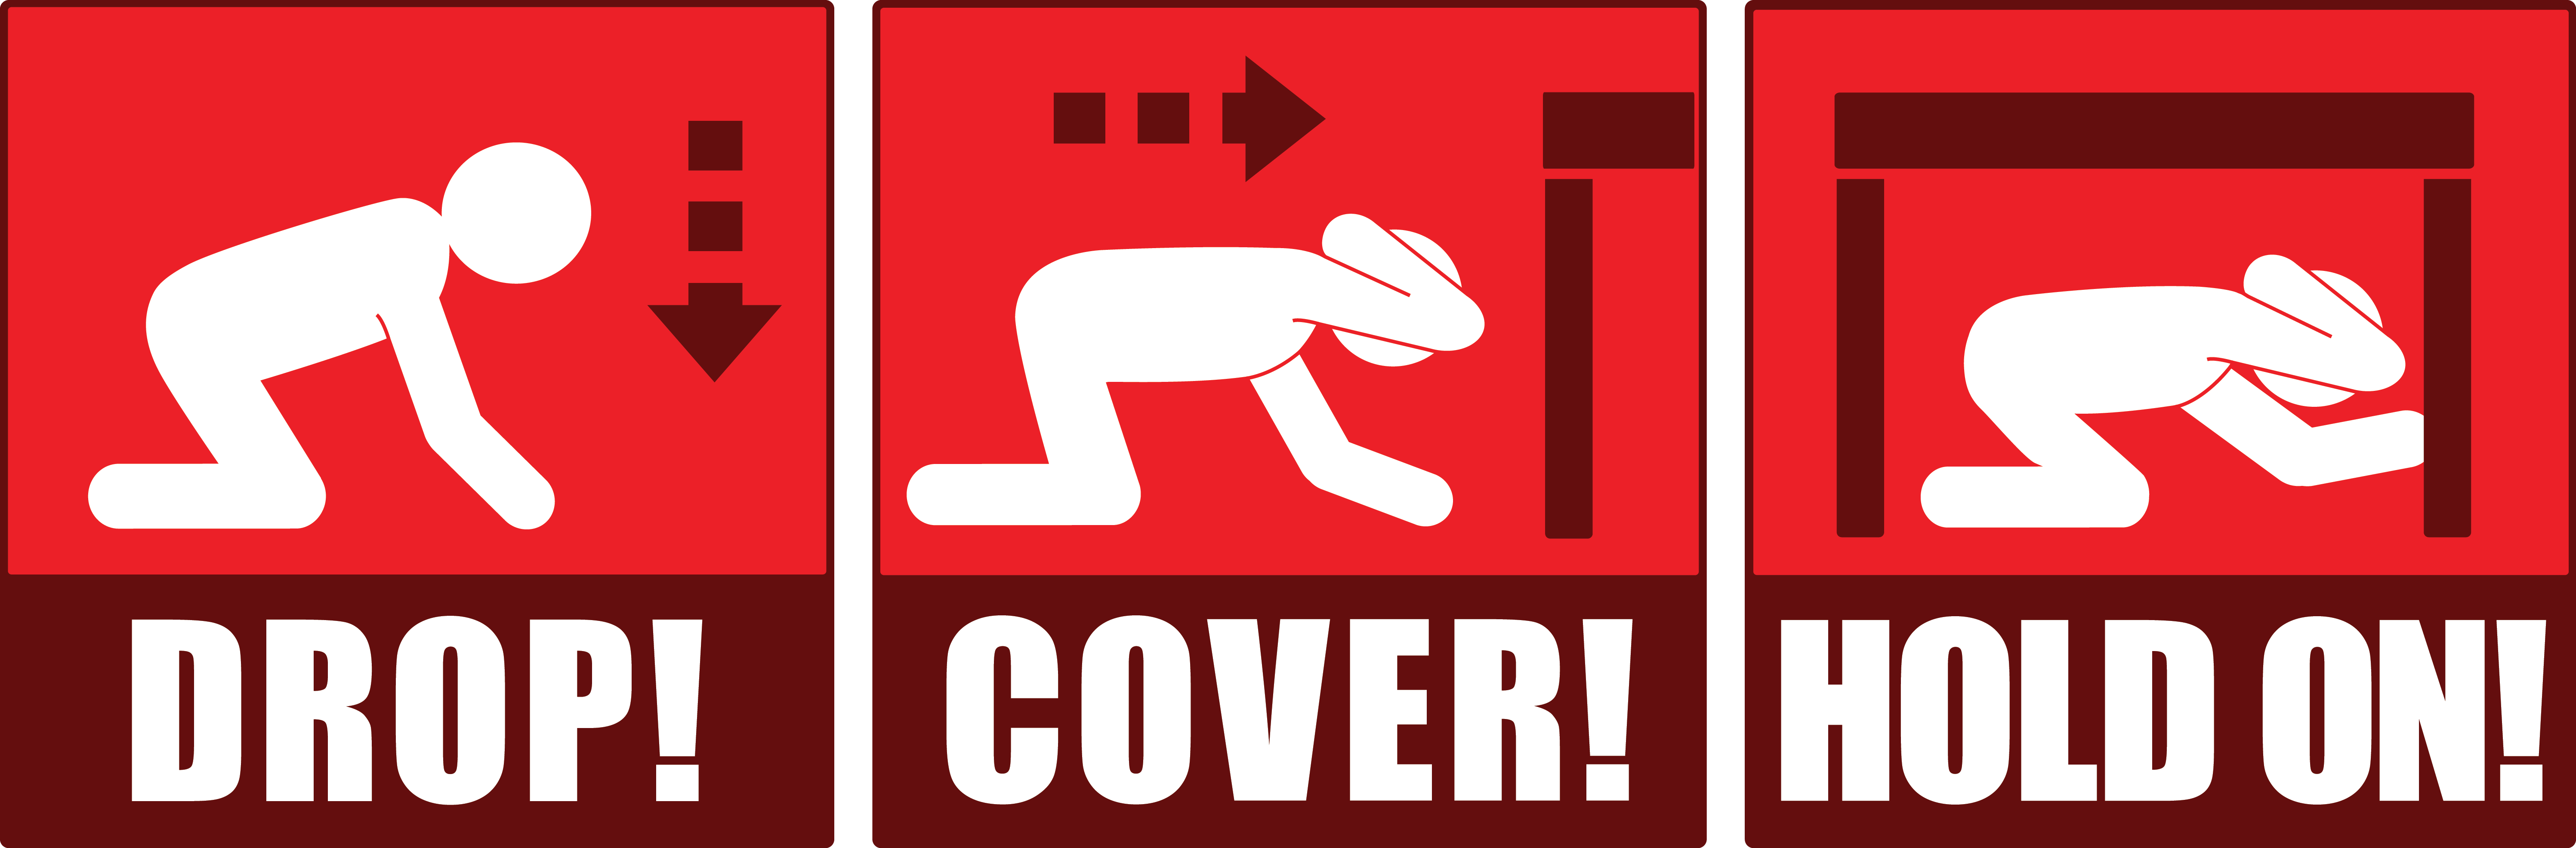 Great Shakeout Earthquake Drills